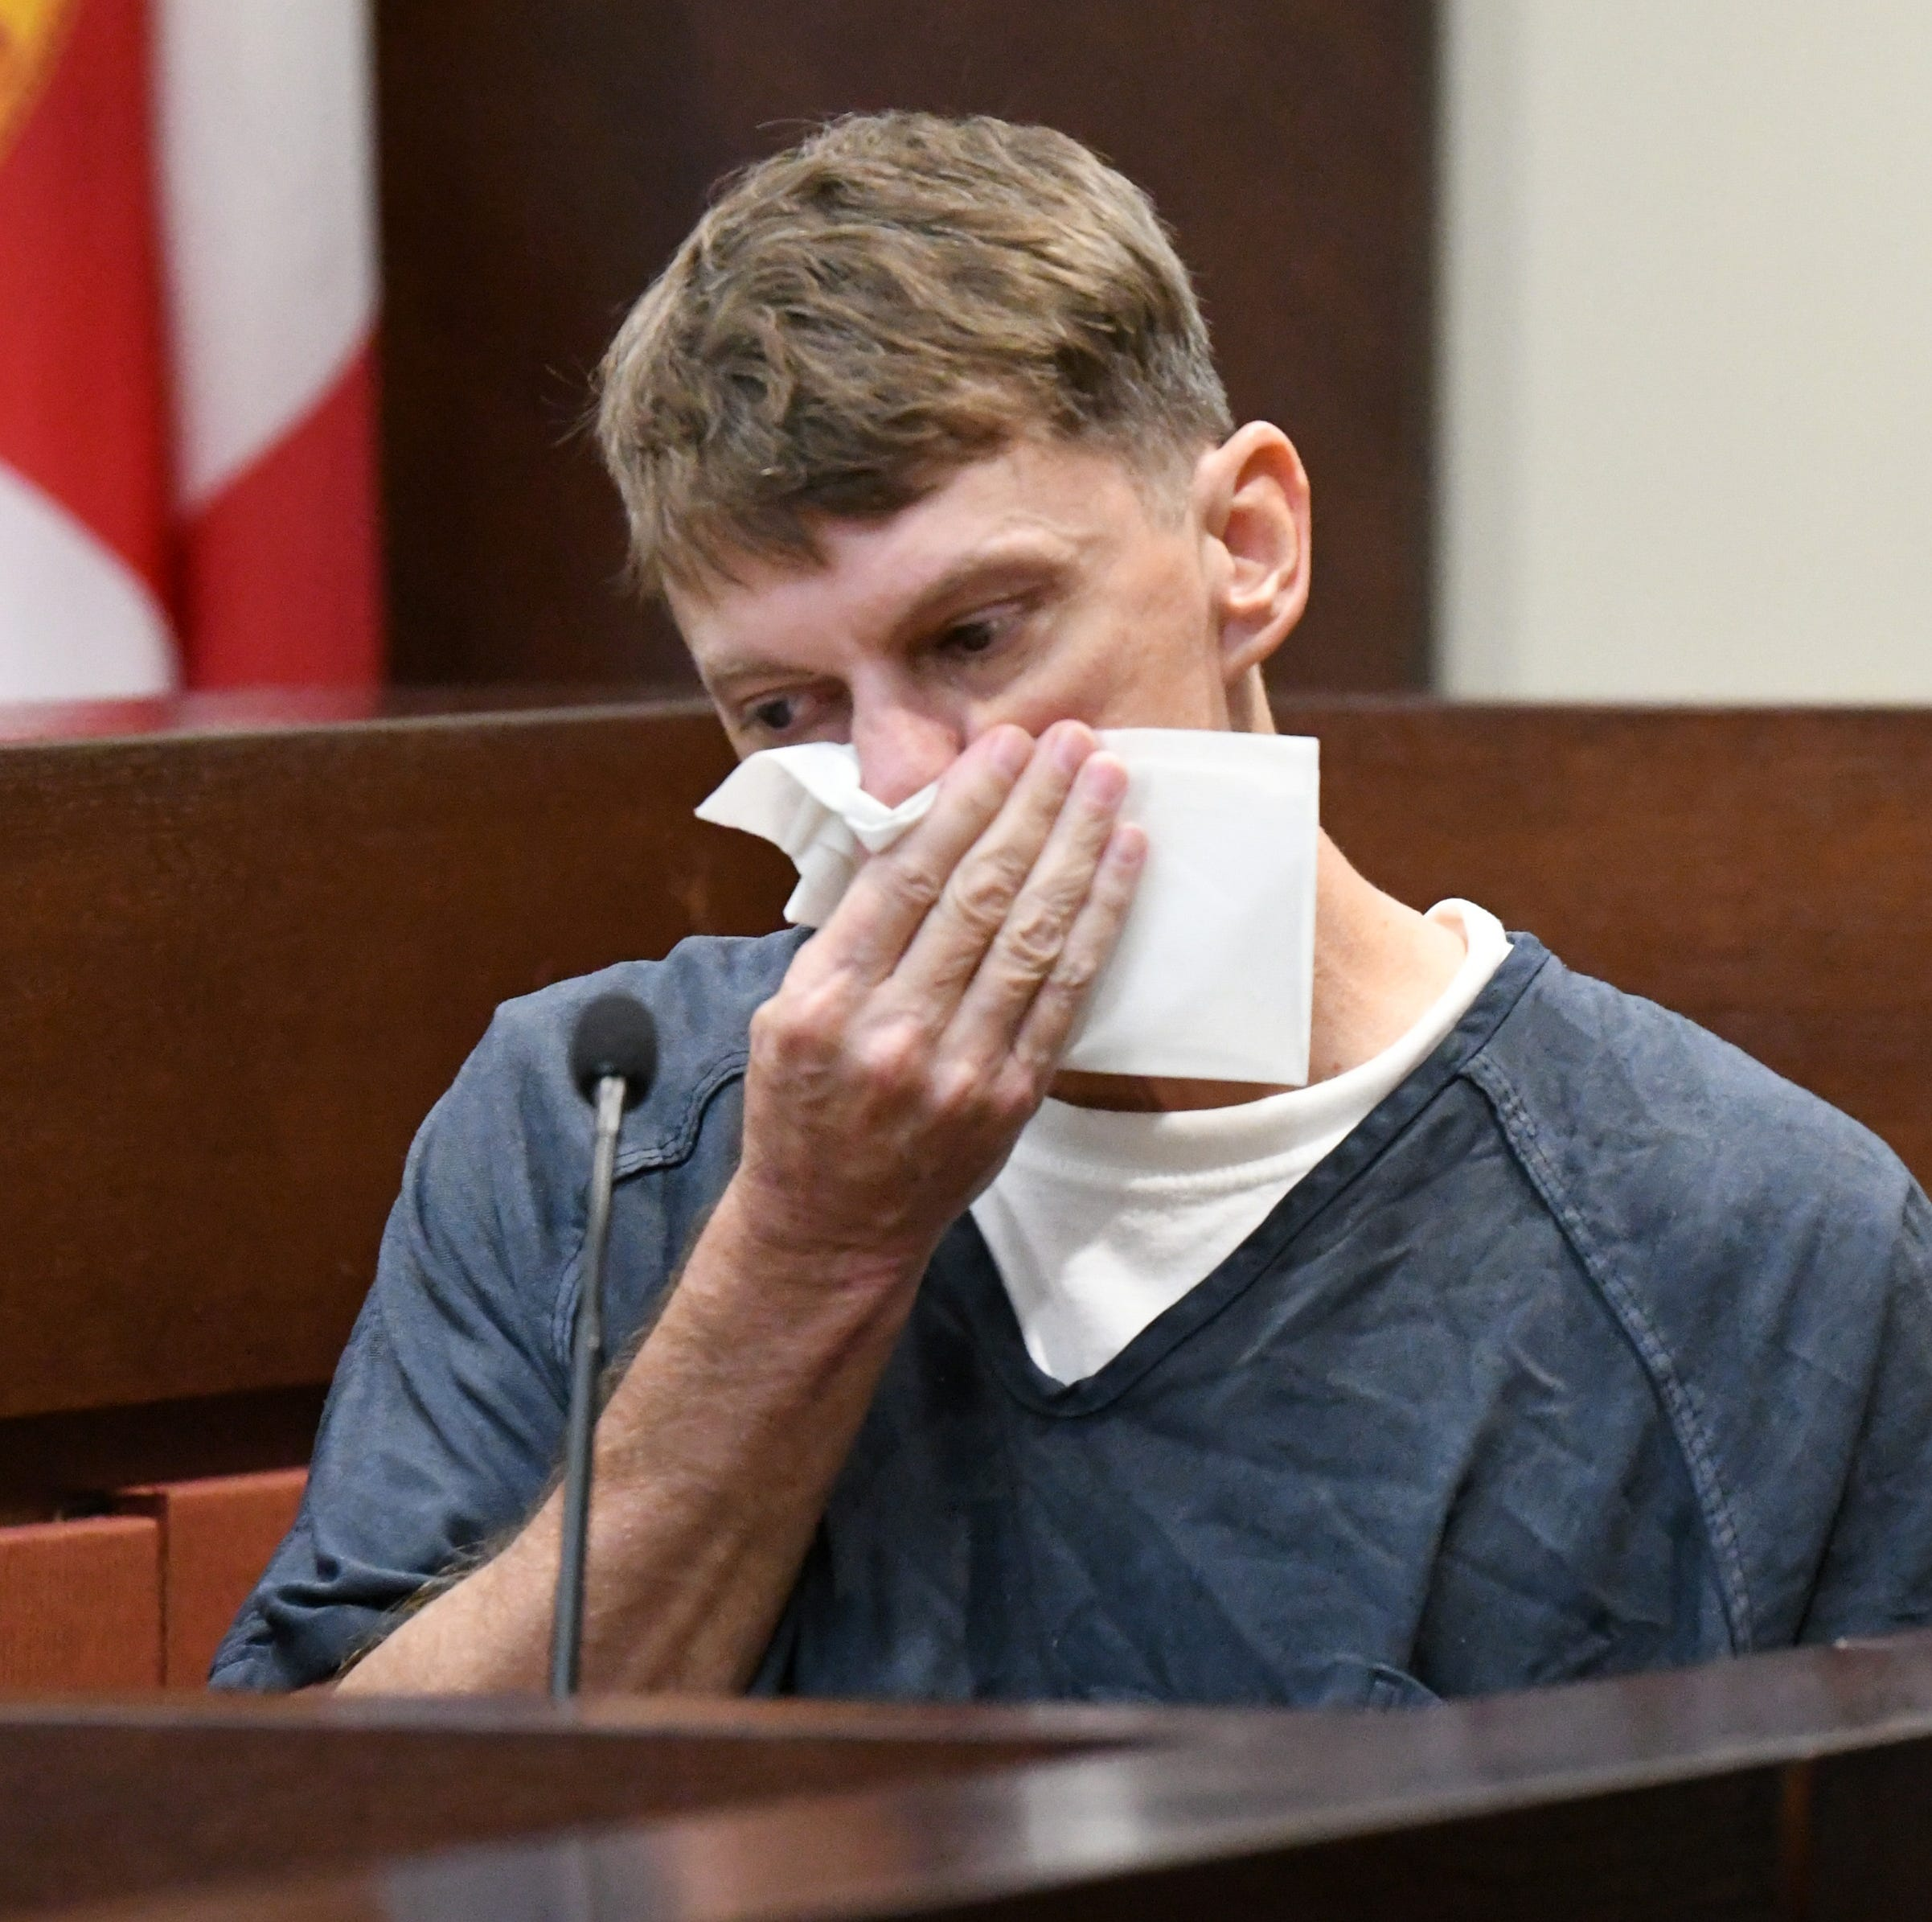 Mike Williams murder: Brian Winchester testifies affair 'snowballed' into plot to kill